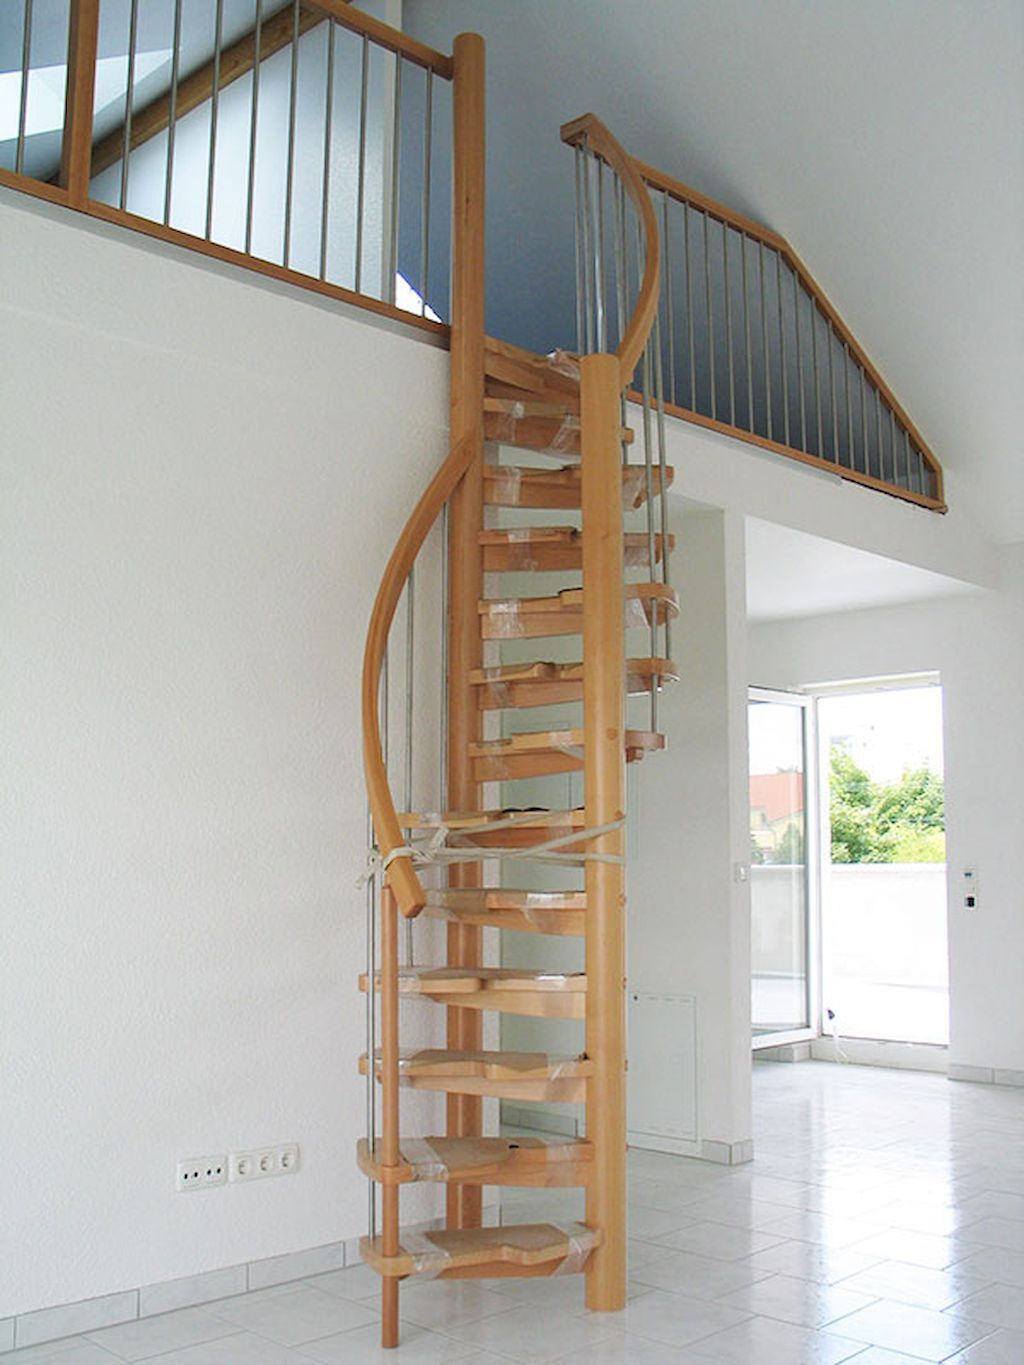 Best Incredible Loft Stair Ideas For Small Room 62 Loft 400 x 300